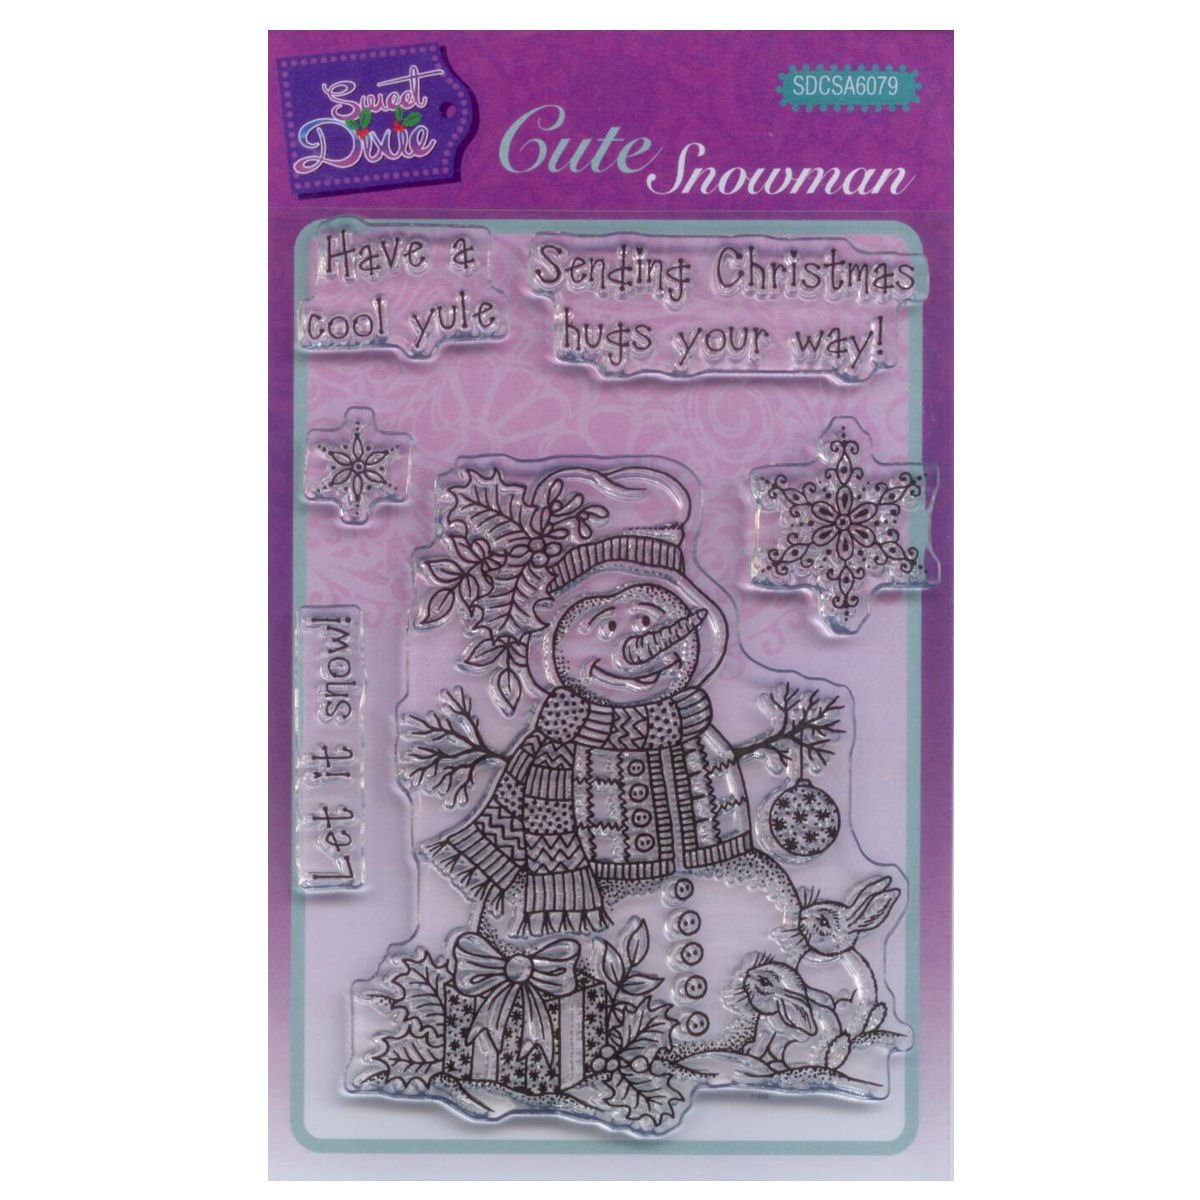 15 x 10.5 x 0.3 cm A6 Transparente Sweet Dixie Dragonfly with Love Juego de Sellos Transparente